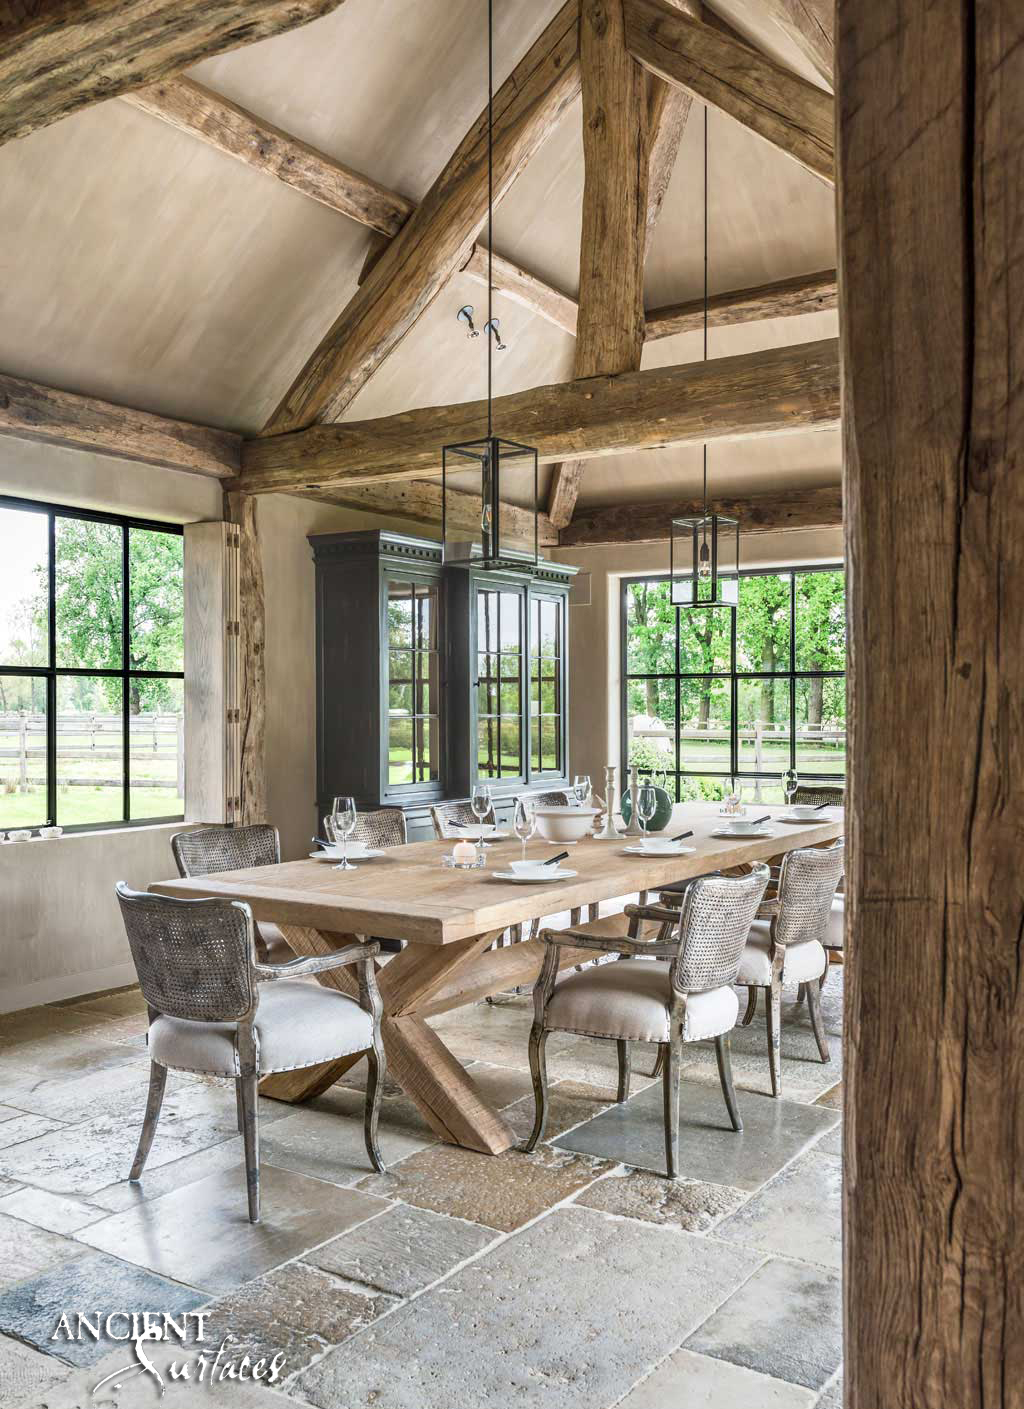 A 300 Years Old French Farmhouse Brought Back To Life